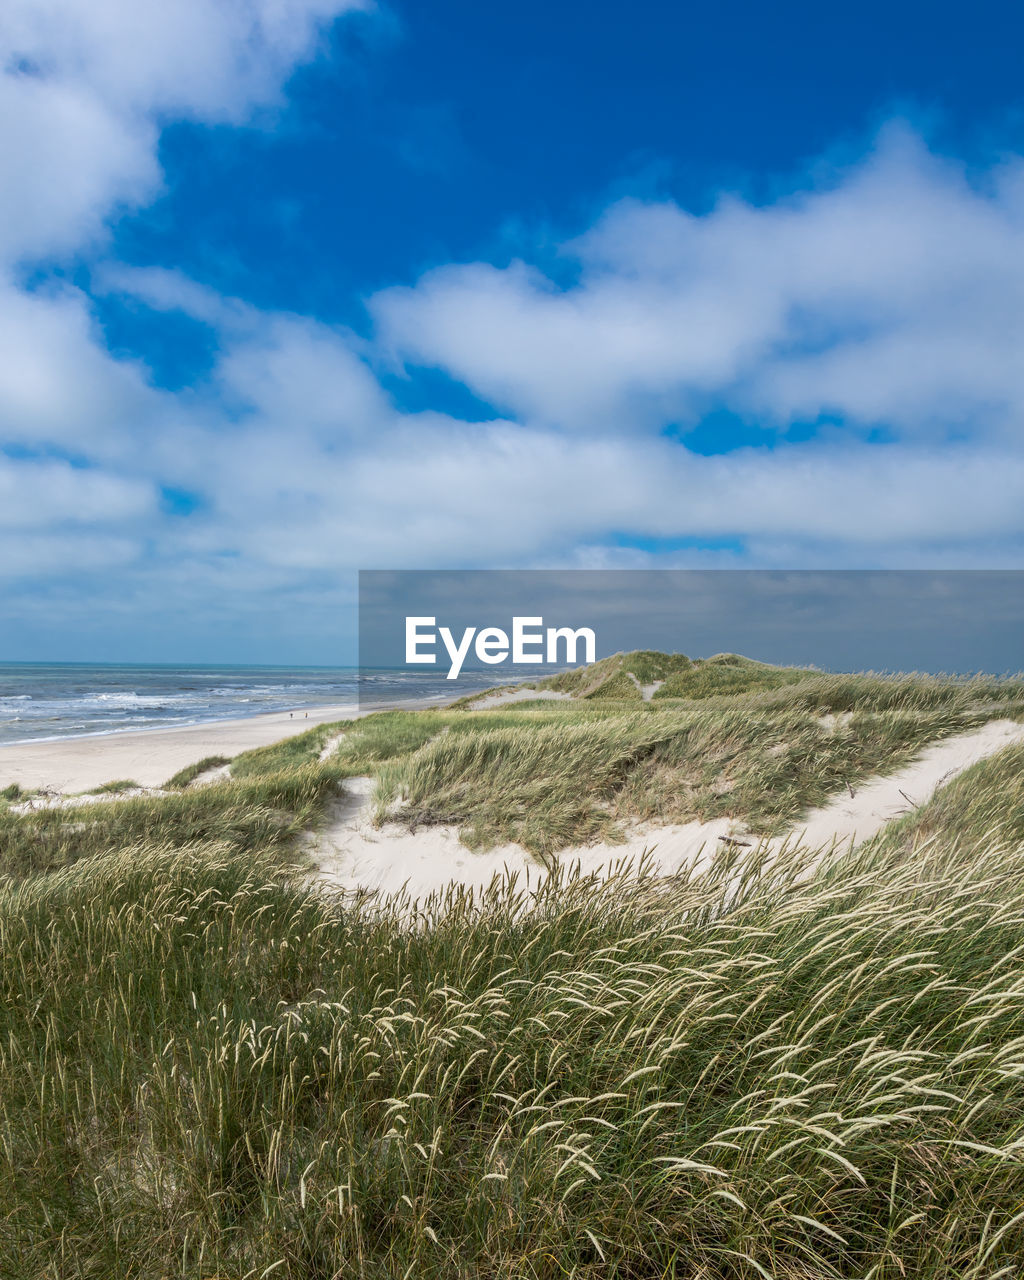 cloud - sky, beauty in nature, sky, scenics - nature, water, sea, tranquility, land, plant, beach, tranquil scene, grass, nature, growth, day, no people, non-urban scene, marram grass, sand, horizon over water, outdoors